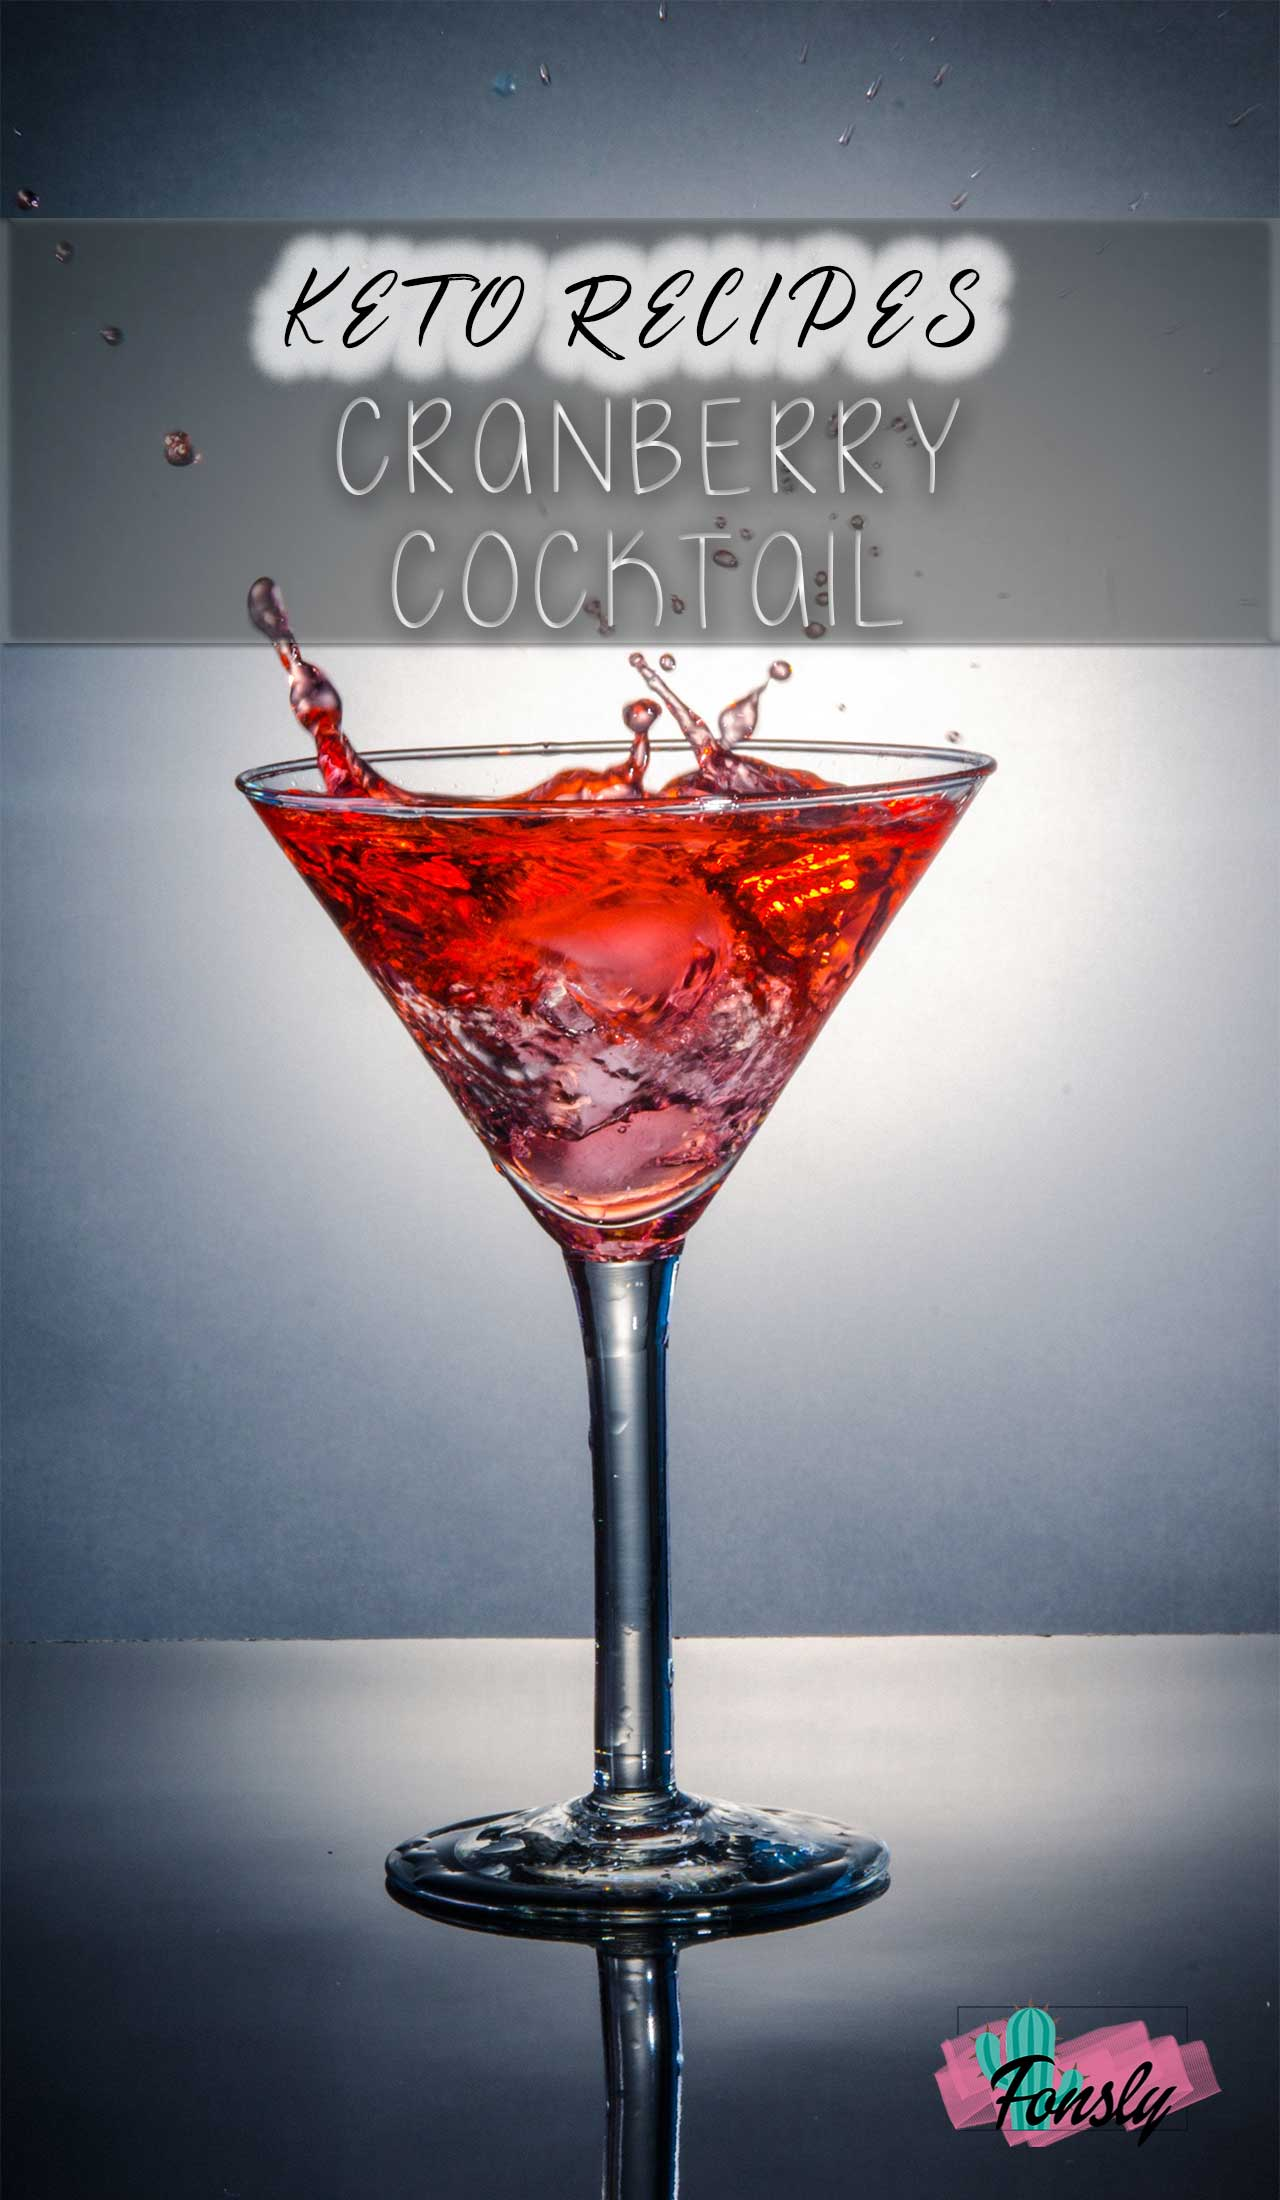 keto vodka drink recipe, keto cocktail recipe